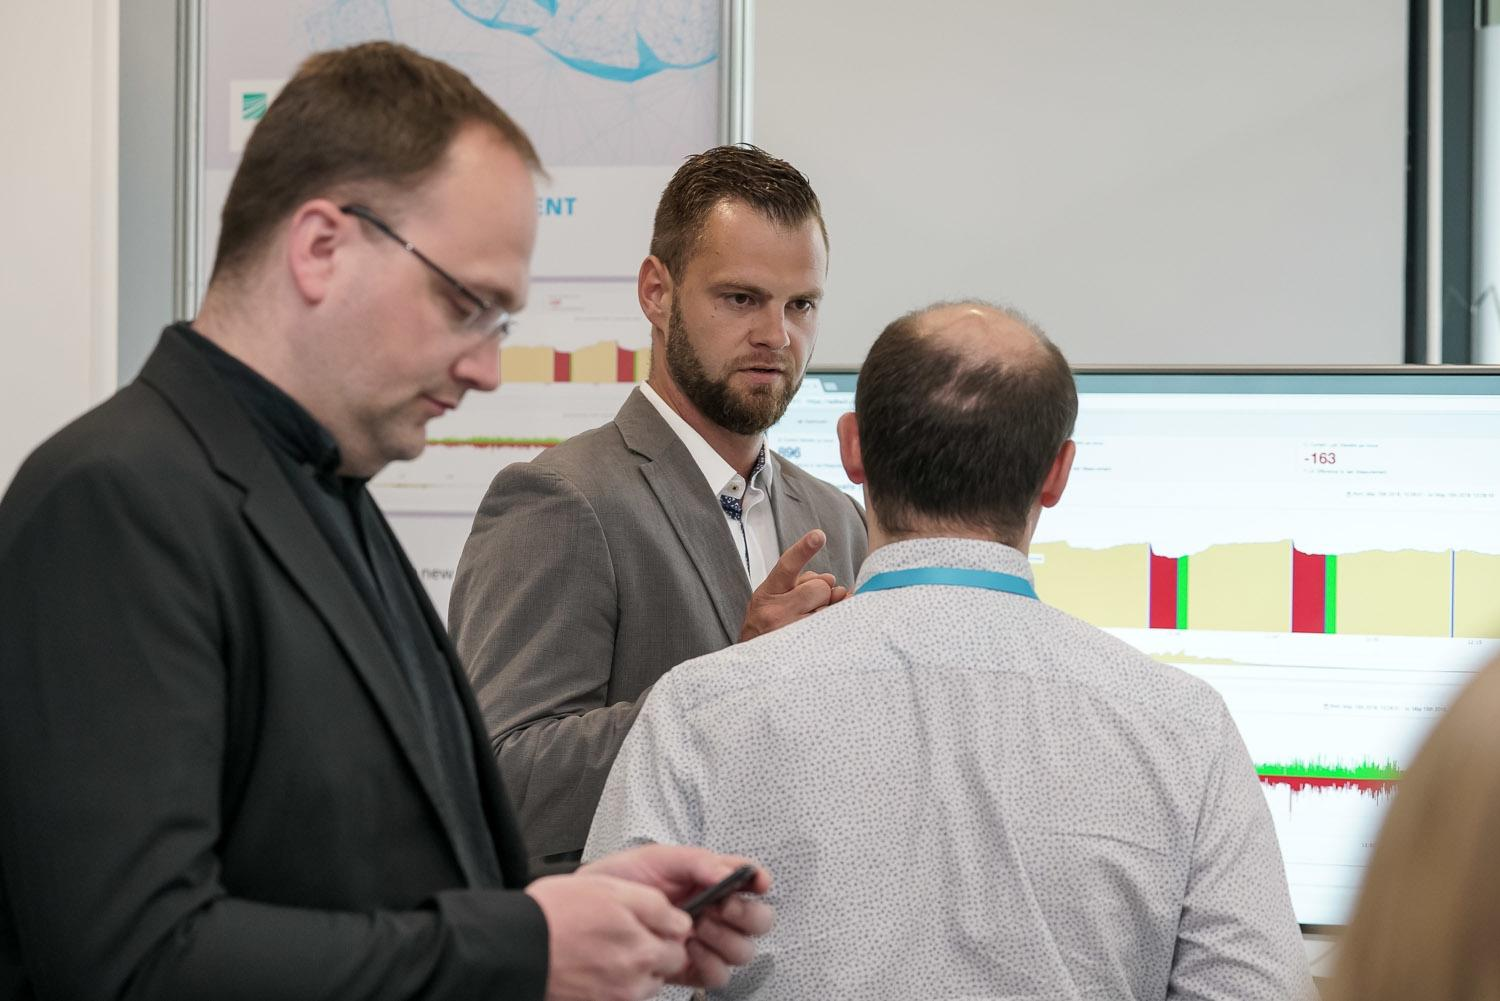 Fraunhofer FOKUS FAME MWS 2018 Broadcast measurement demo